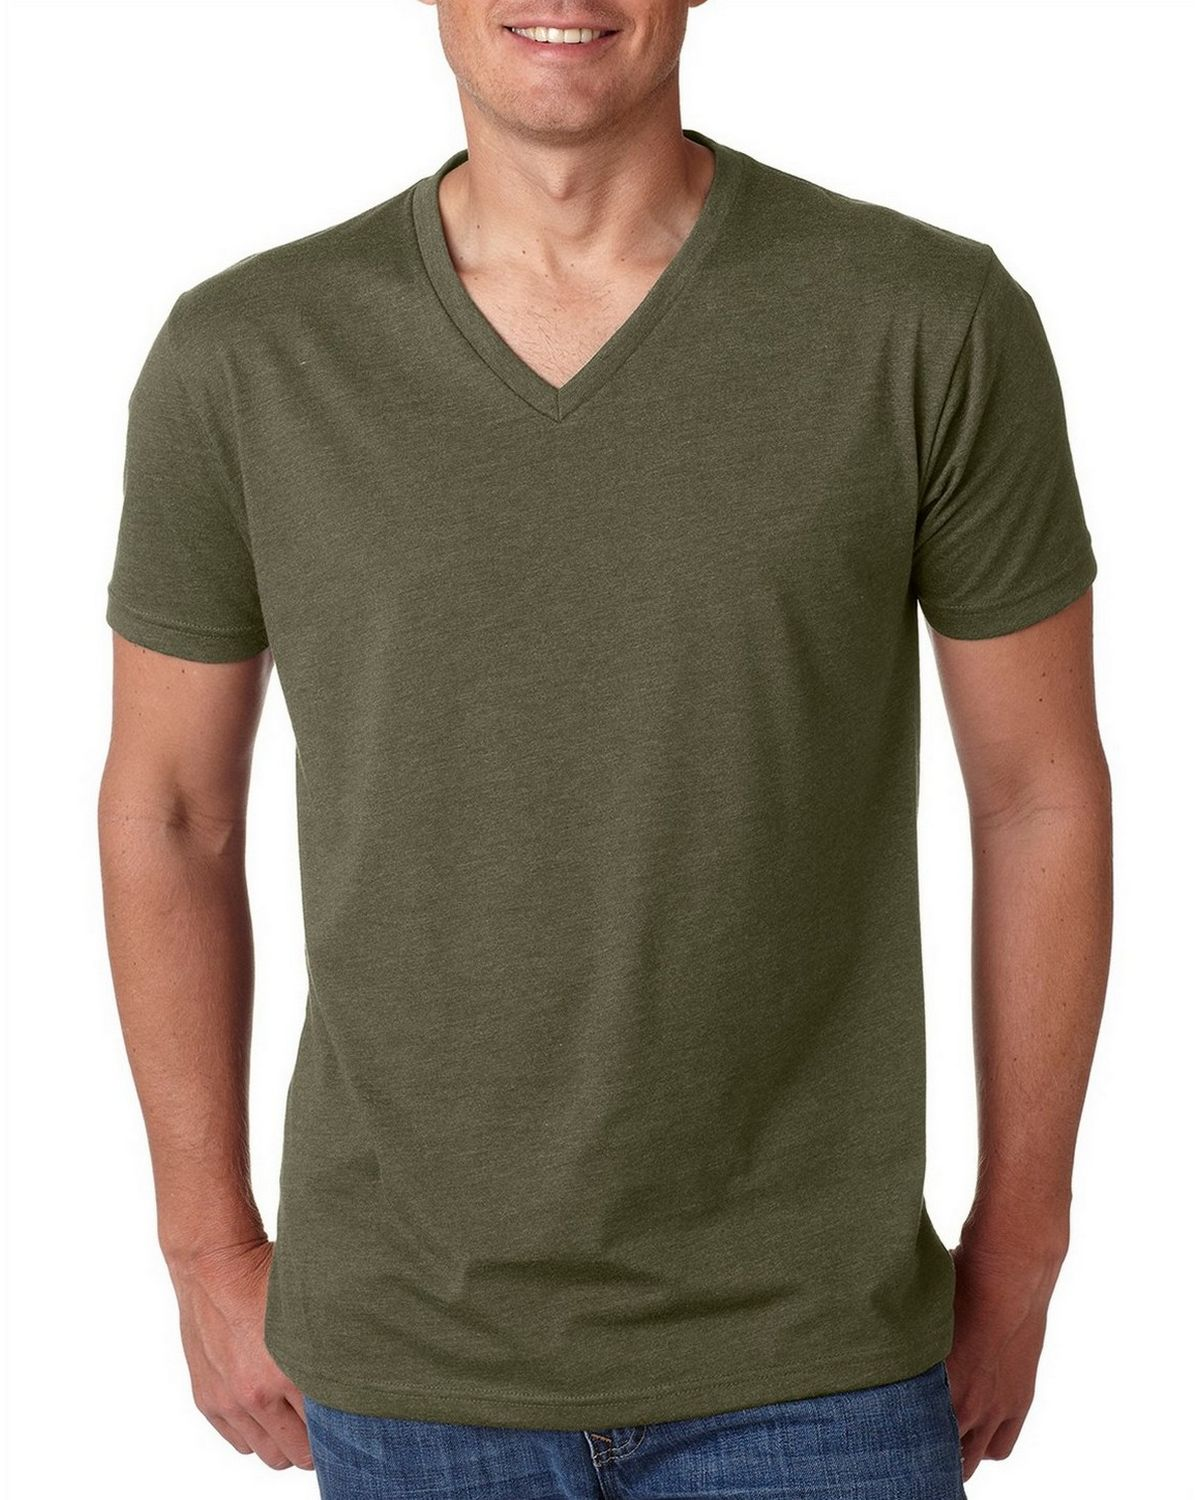 b19b40dc0 Buy Next Level 6240 Mens Premium CVC V-Neck Tee